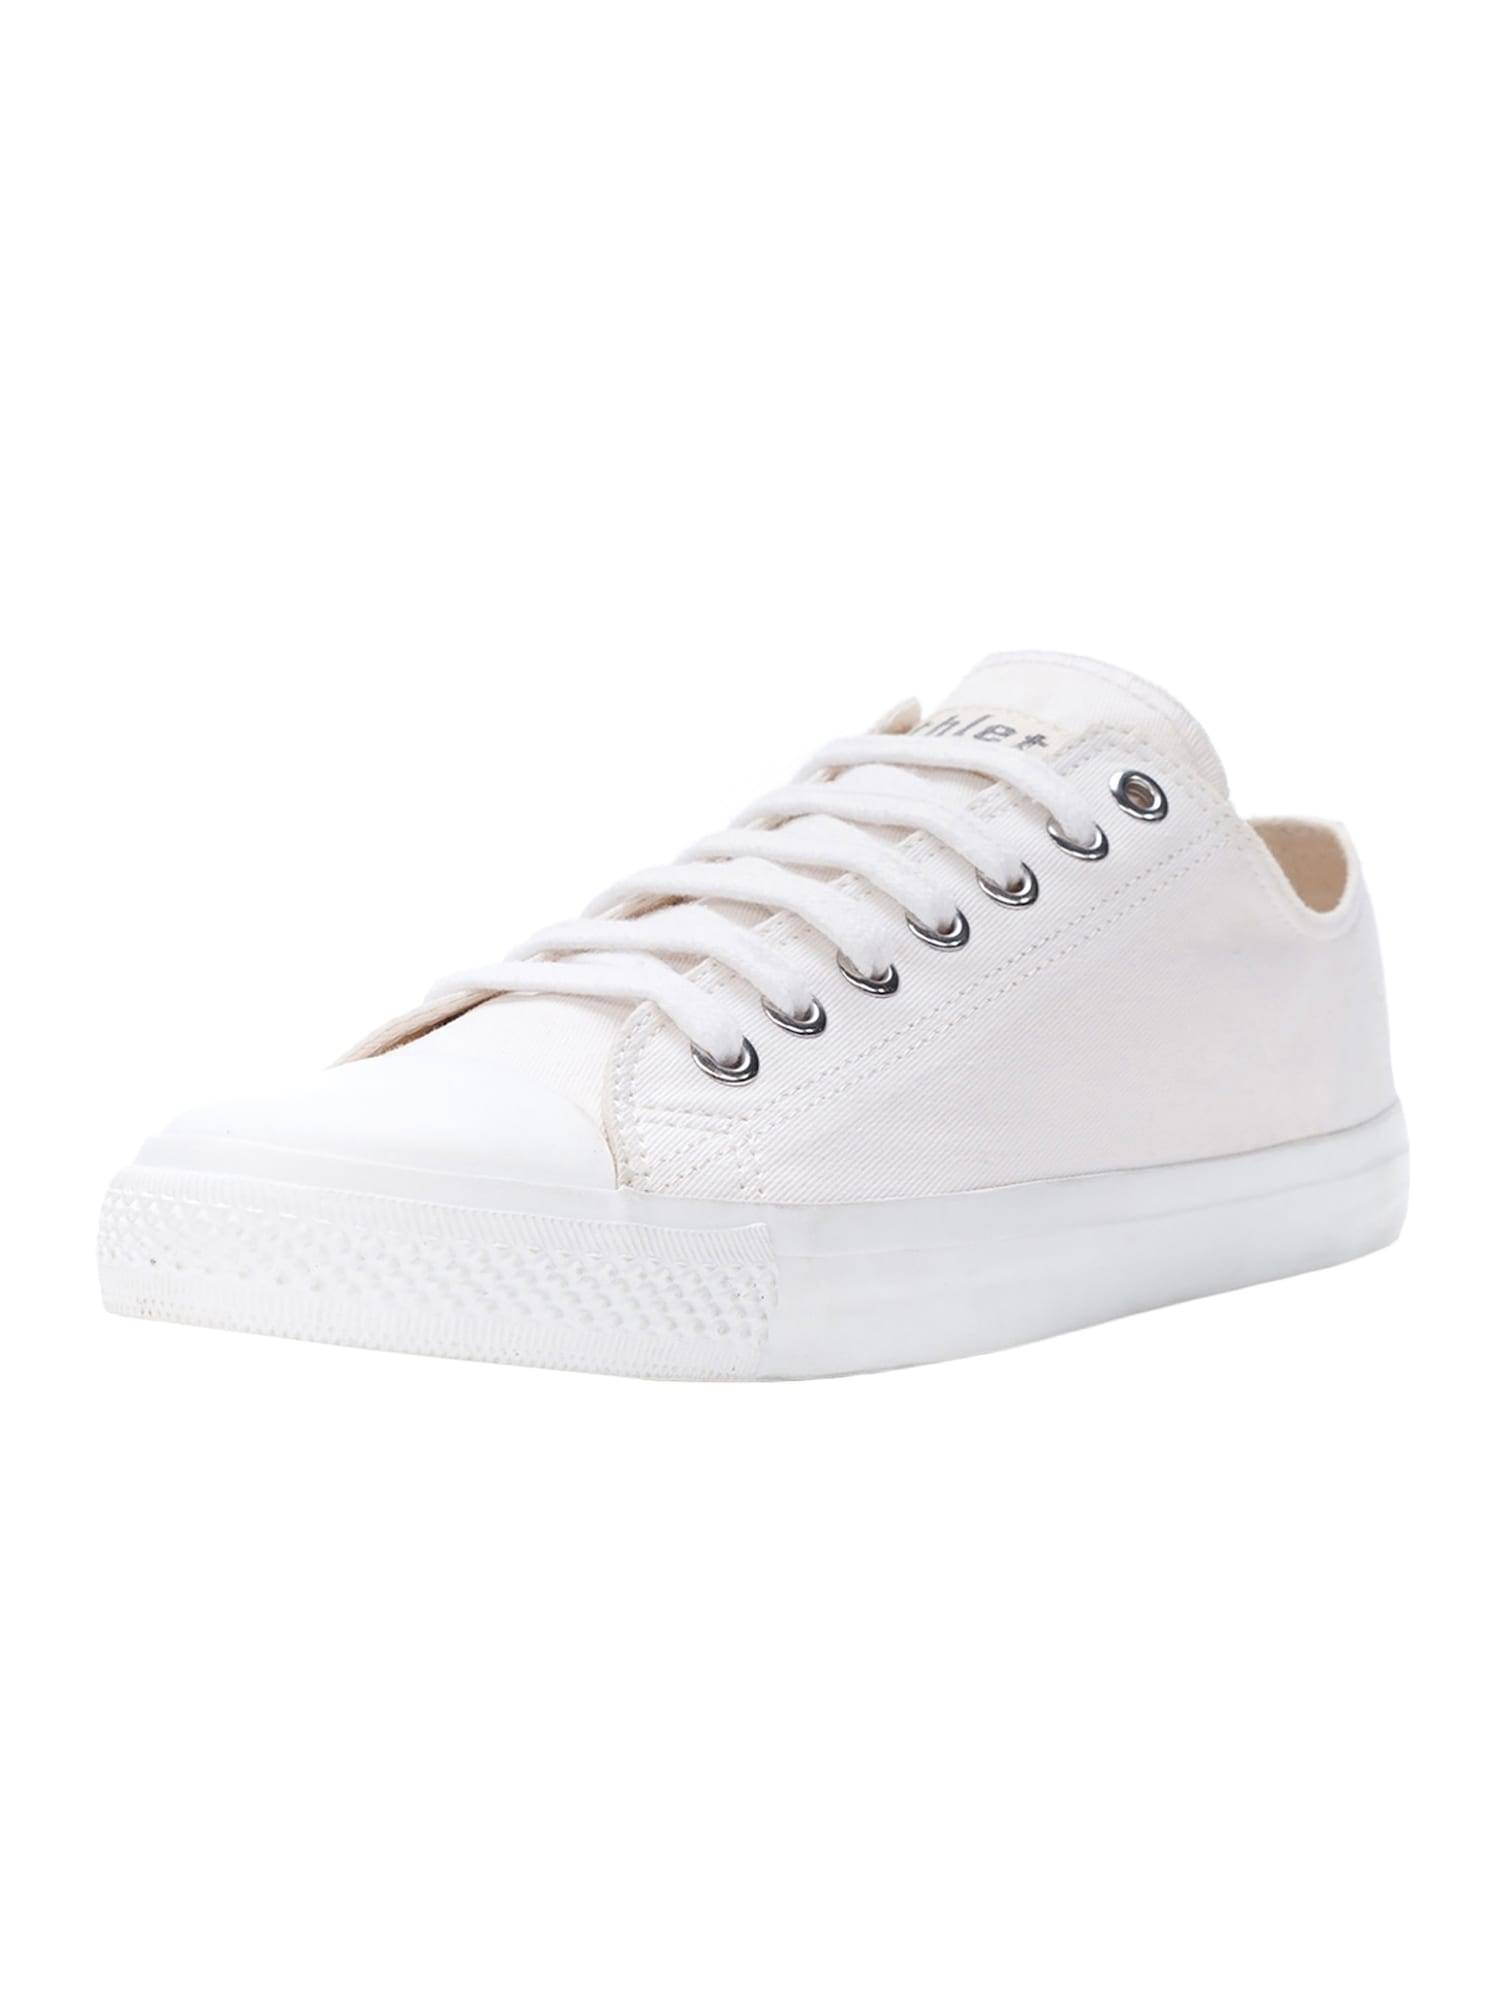 Ethletic Baskets basses 'Fair Trainer White Cap Low Cut'  - Blanc - Taille: 40 - male